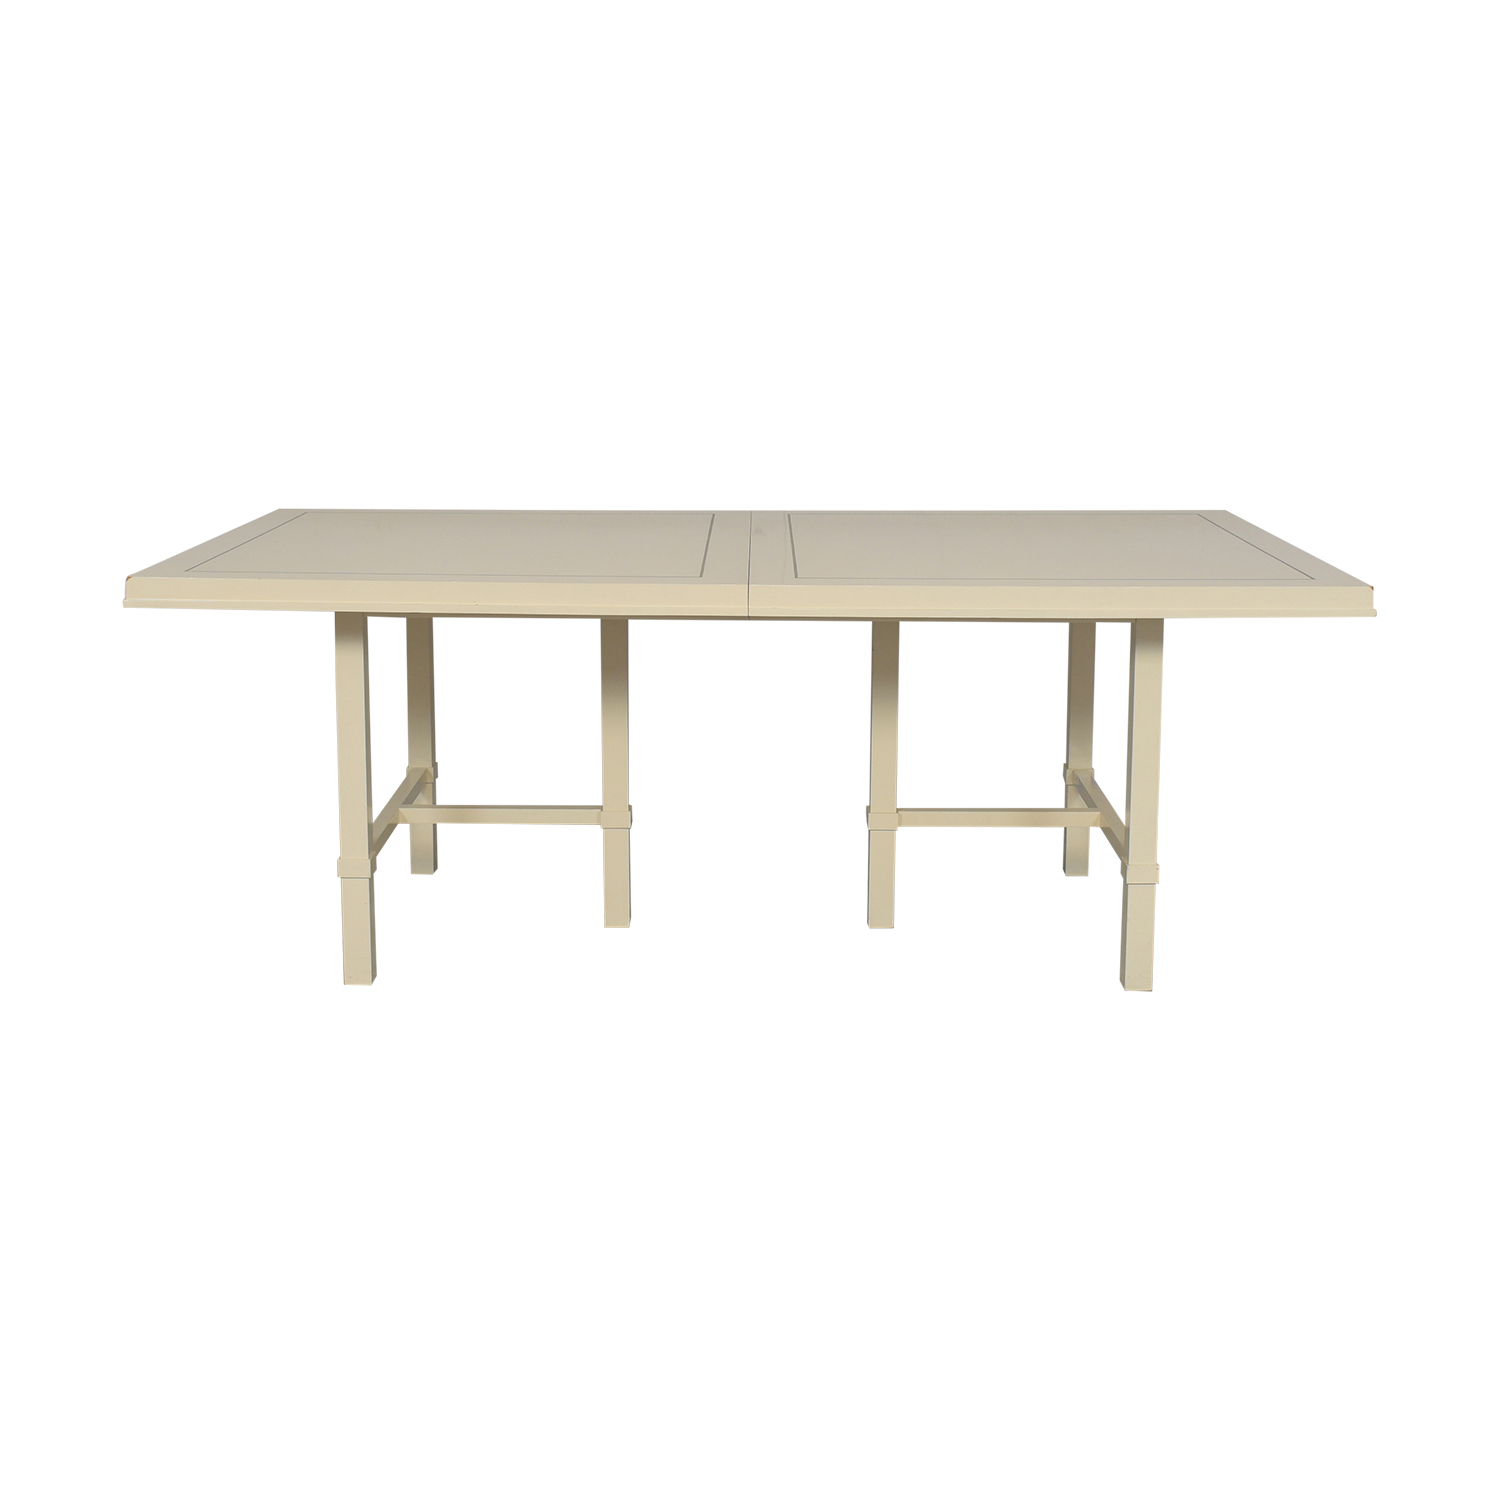 Bernhardt Bernhardt Dining Table nj